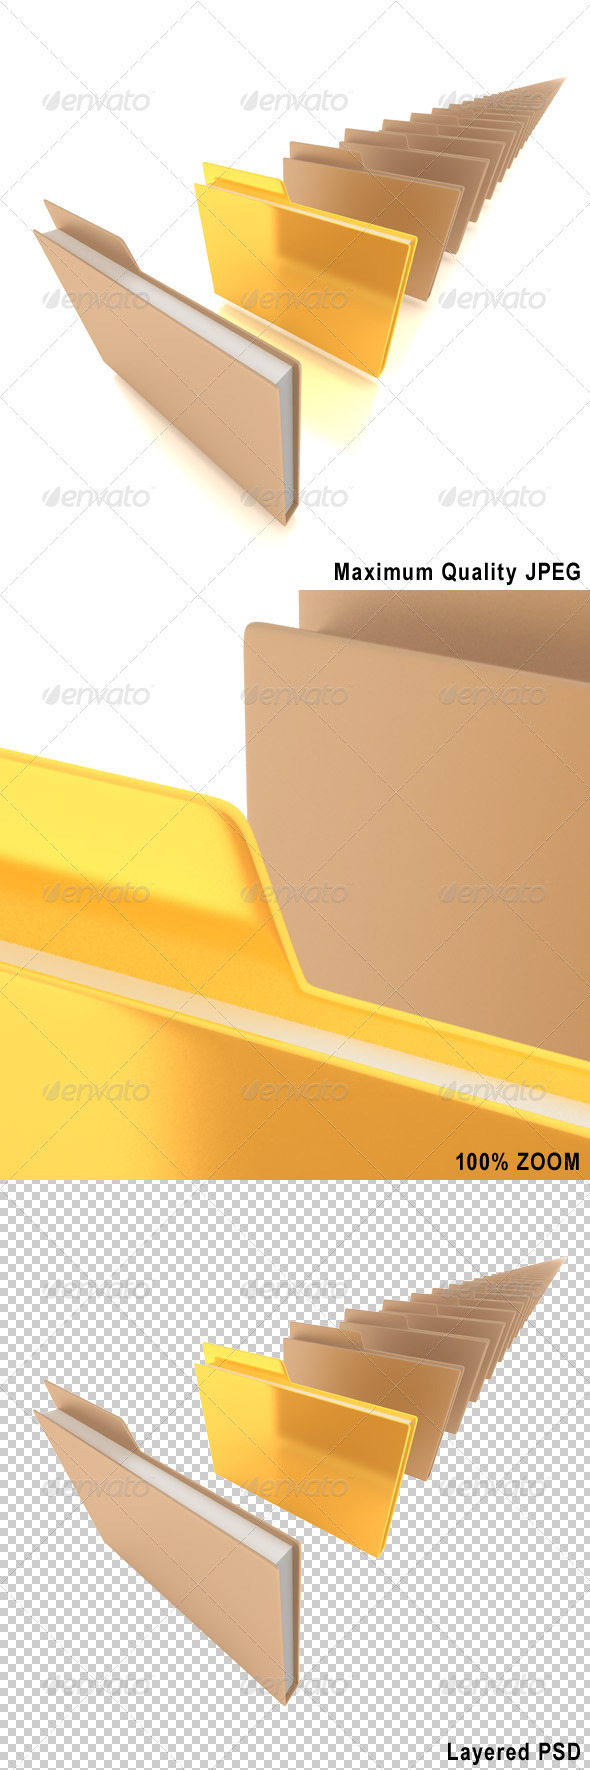 Document Folders with One Golden Folder - Objects 3D Renders